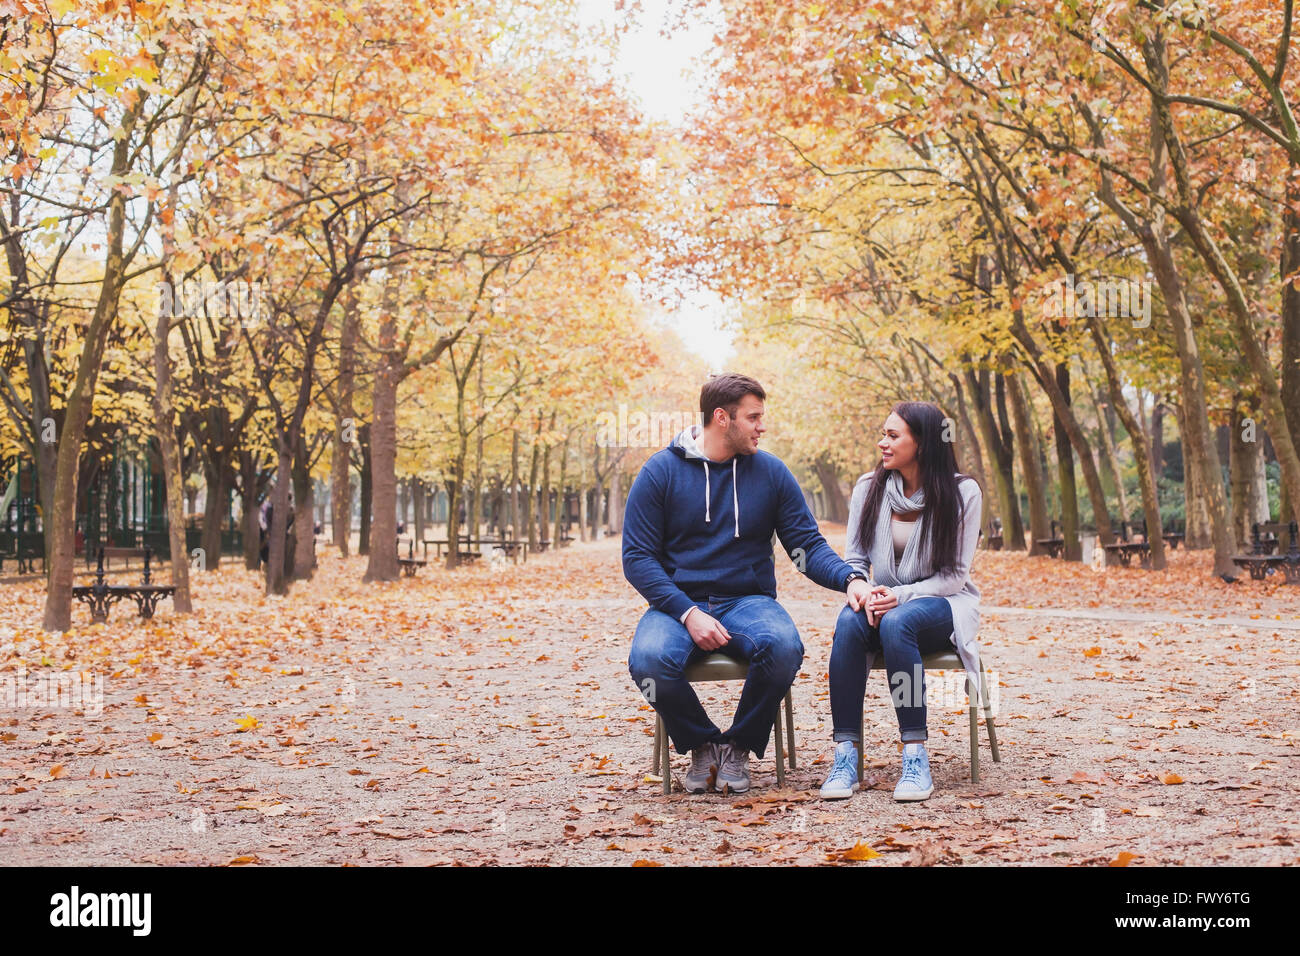 man and woman relationship, family psychology concept, love and dating Stock Photo